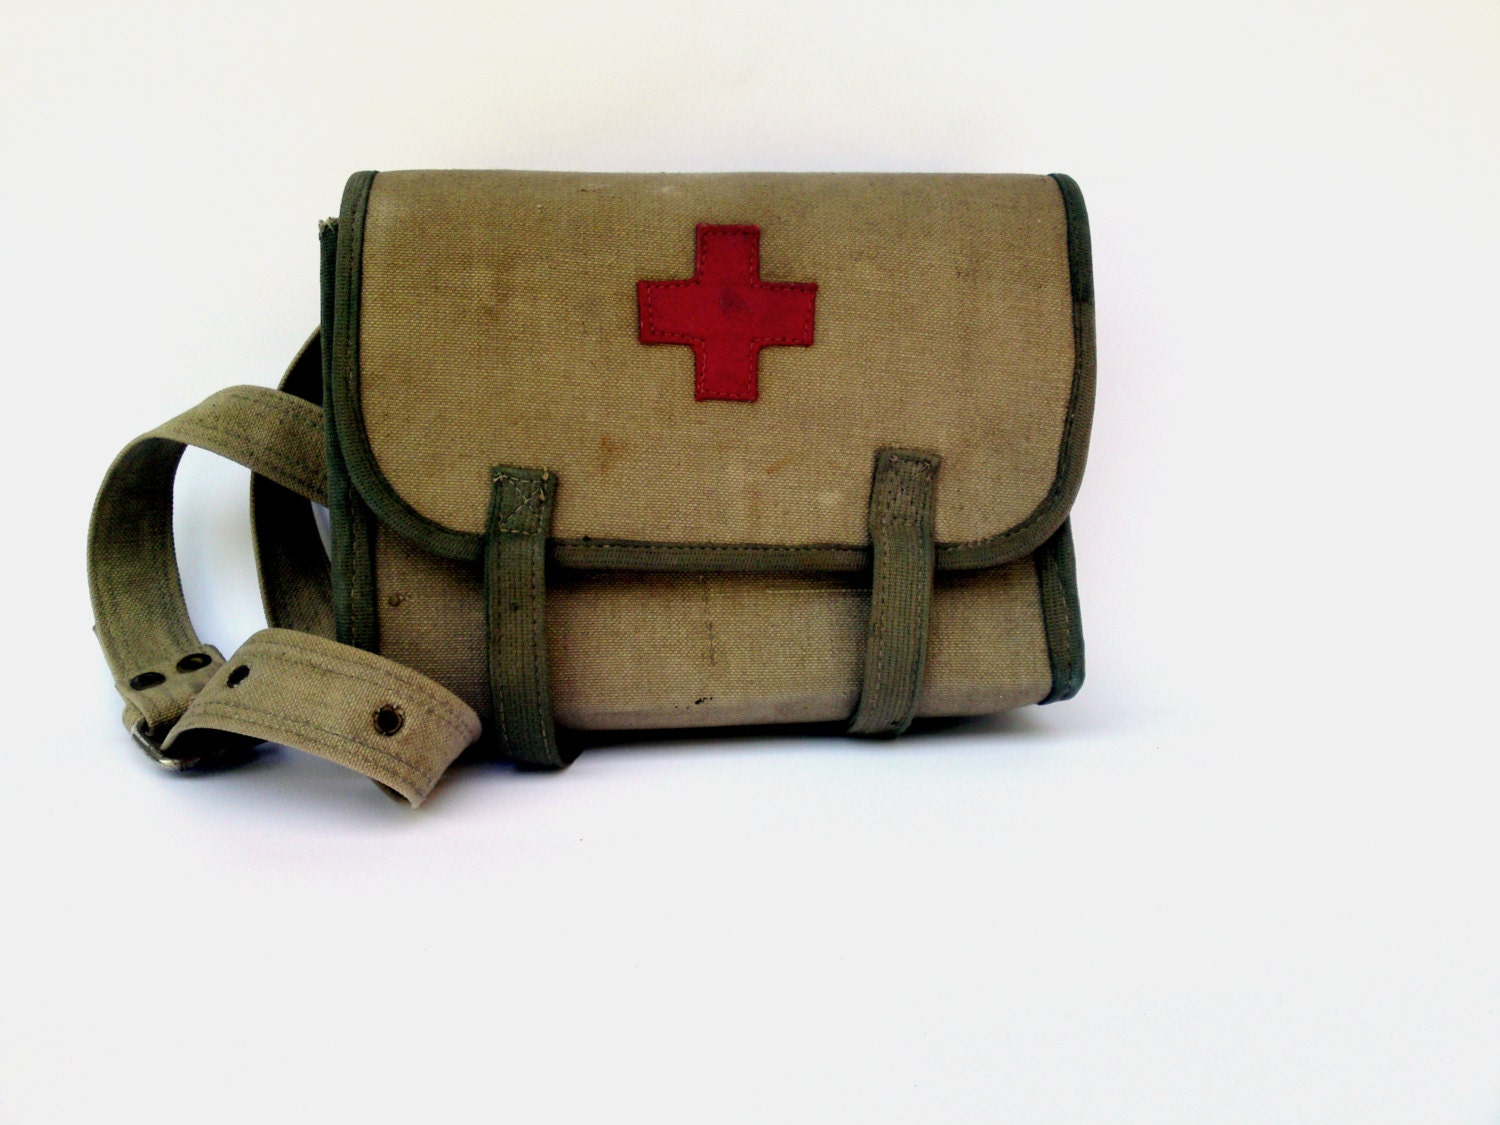 Vintage Red Cross Medical Bag Waxed Military Army Canvas Bag